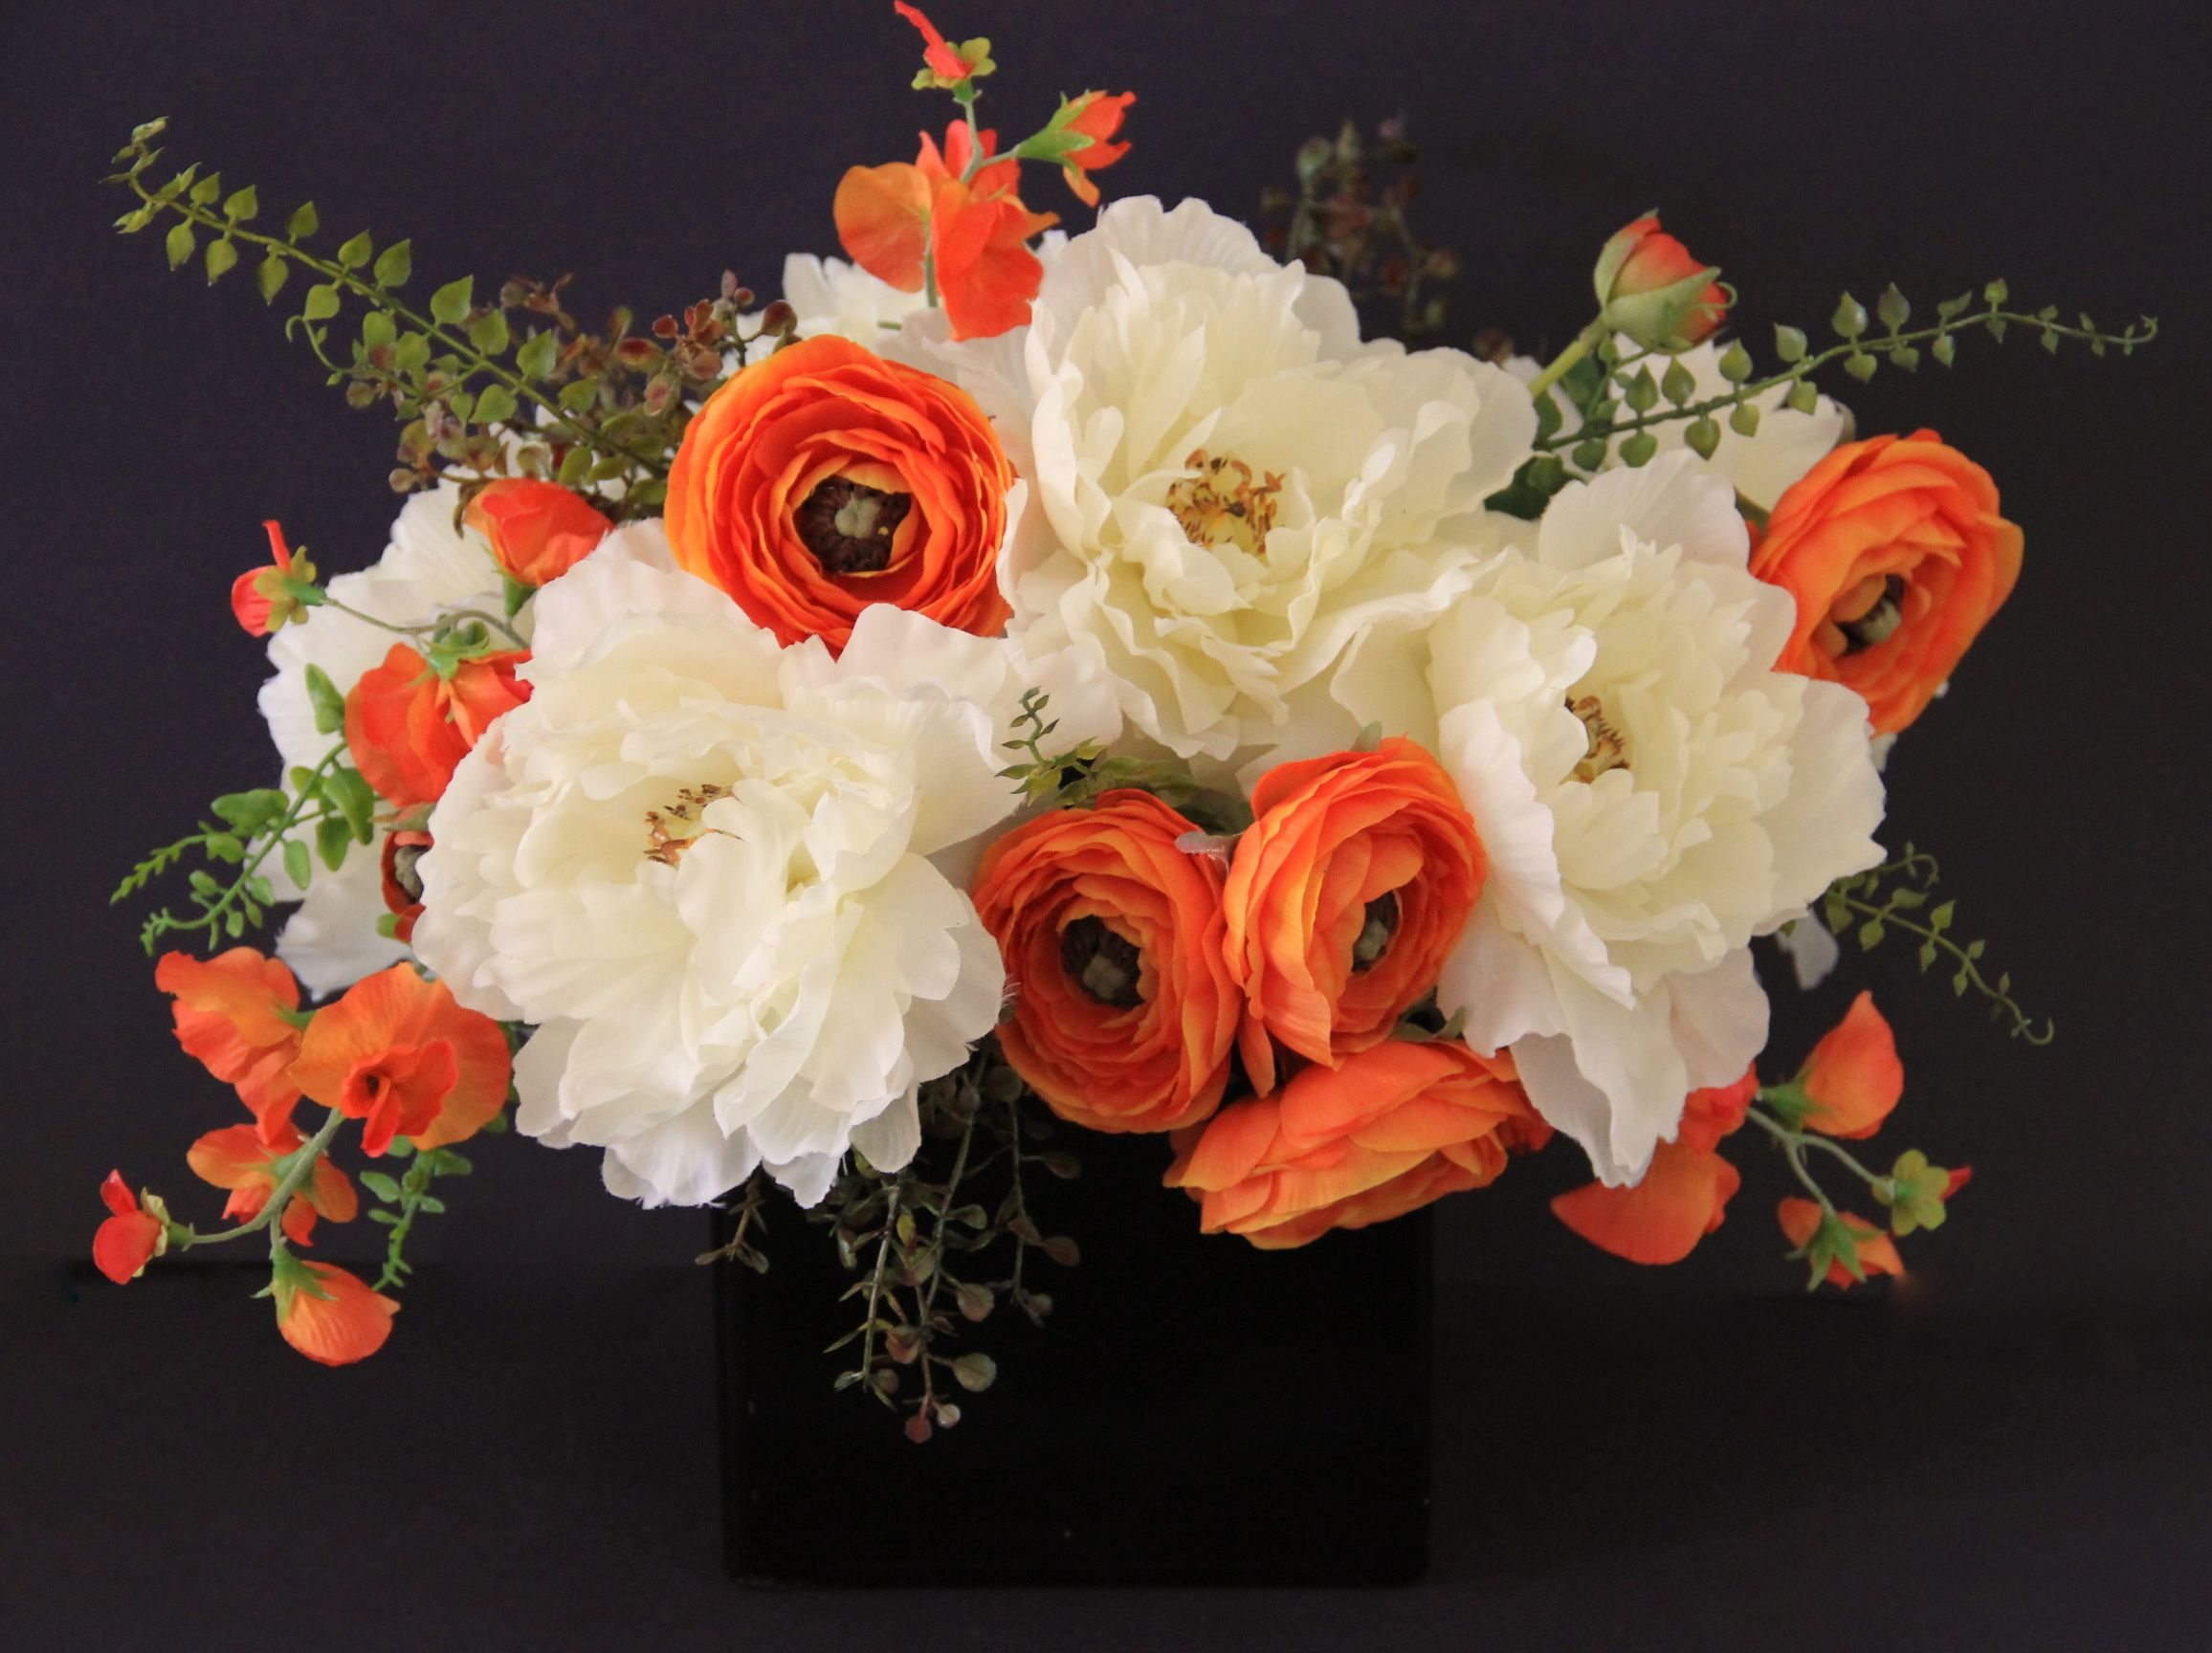 Artificial Silk Flowers Arrangement White Peonies Orange Ranunculus Sweet Pea And Fol Artificial Silk Flowers Faux Flower Arrangements Silk Flower Arrangements